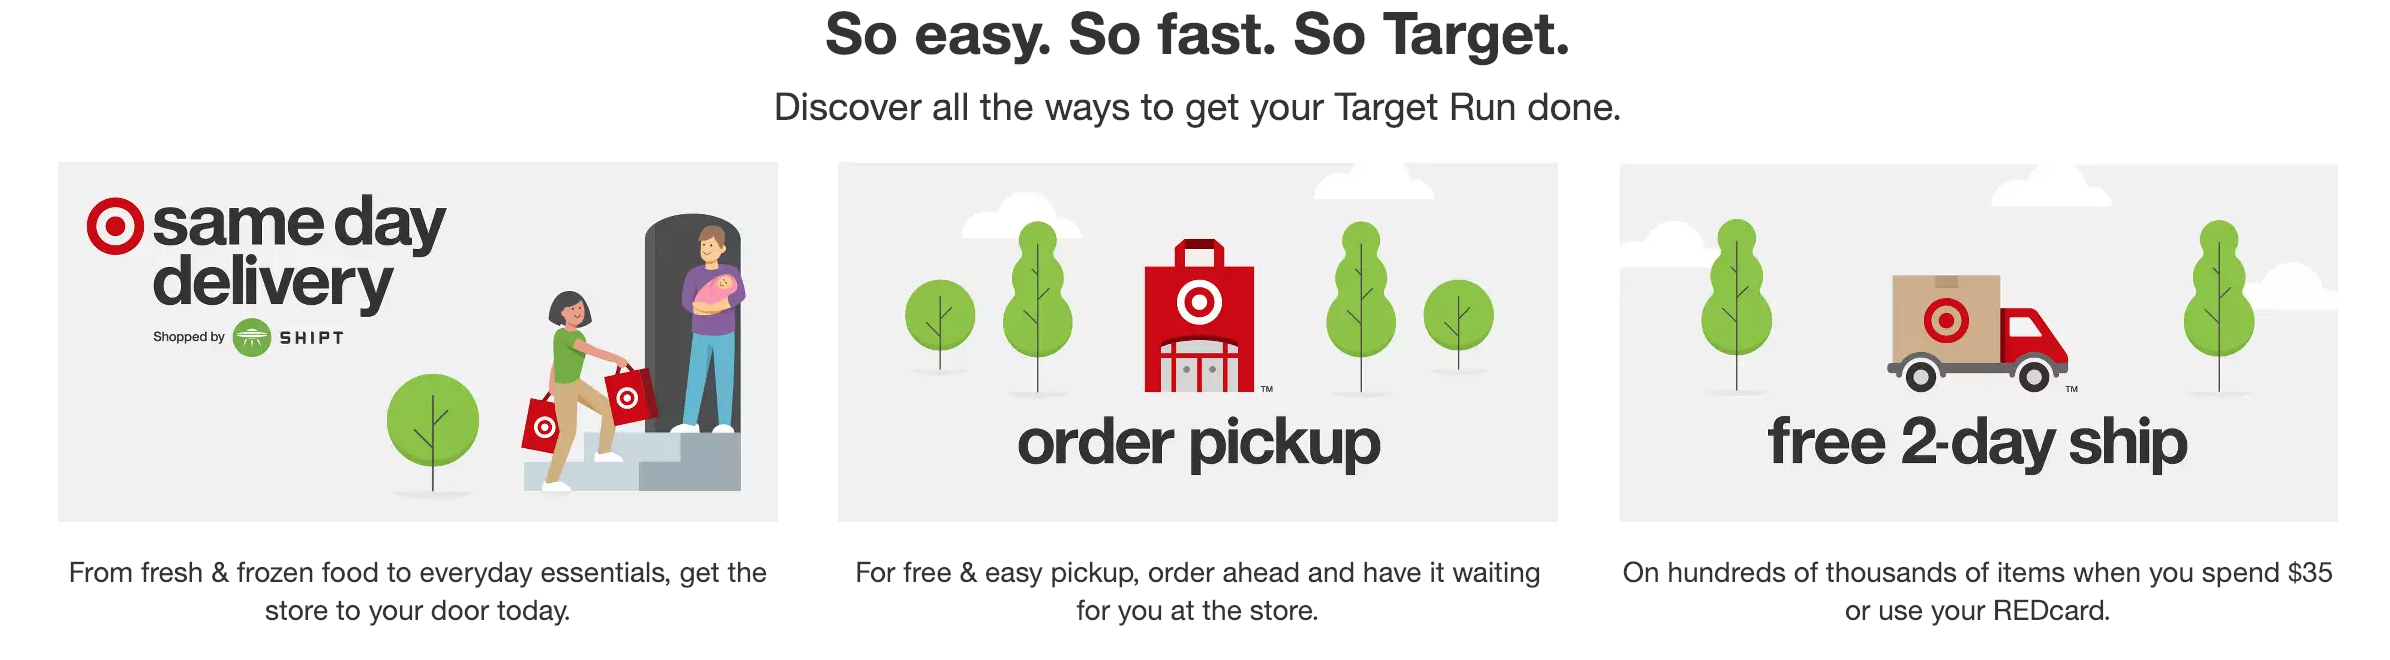 Target same day delivery pickup and two day shipping for low priced commodity items